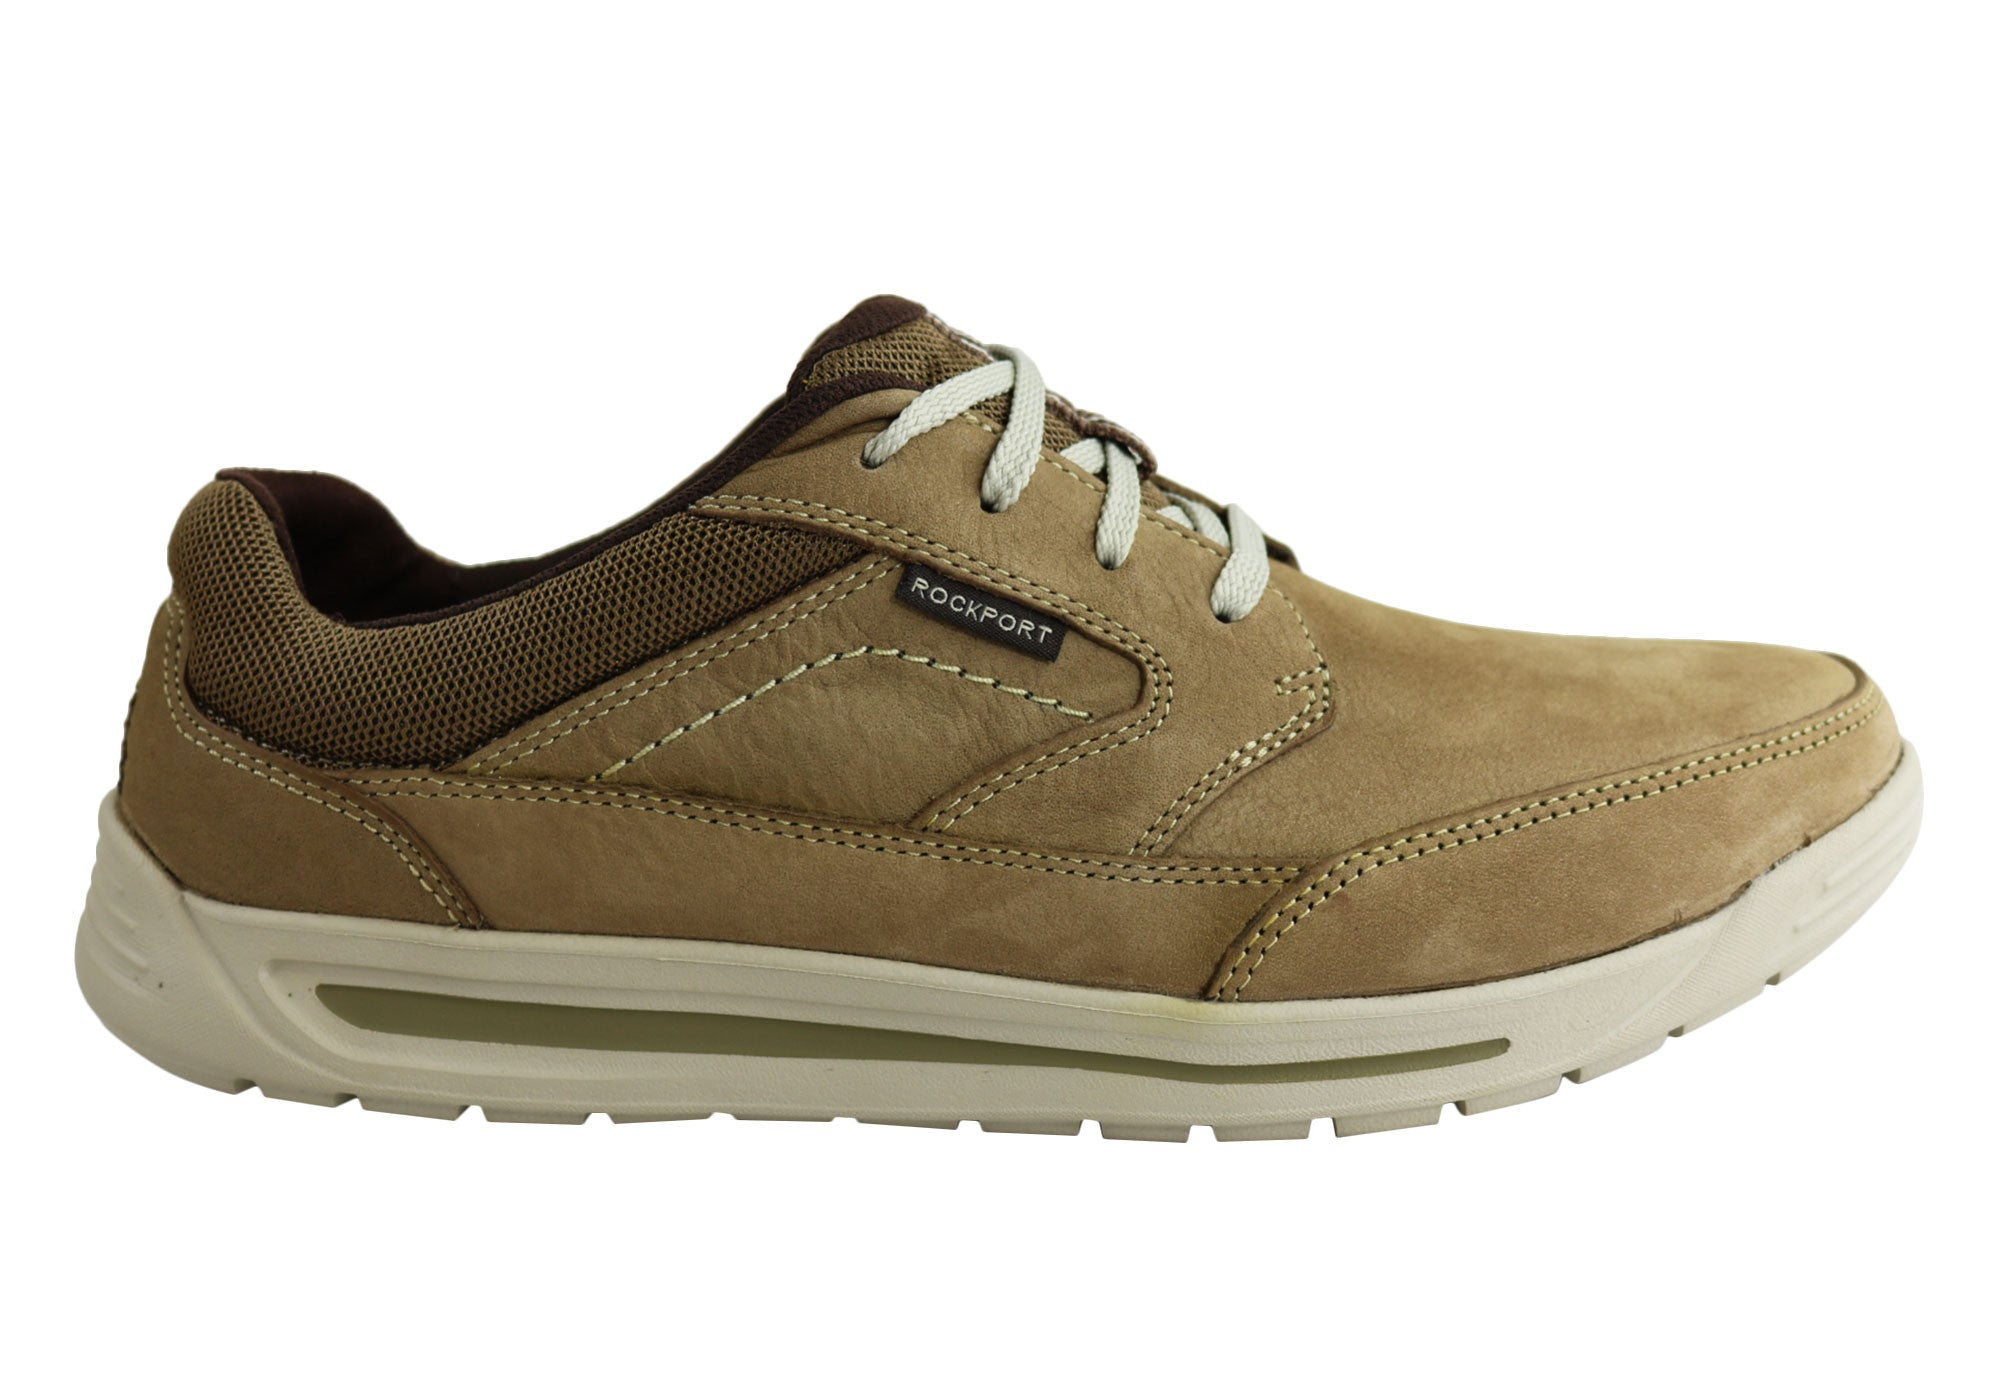 NEW-ROCKPORT-MENS-RANDLE-MUDGUARD-LEATHER-WIDE-FIT-